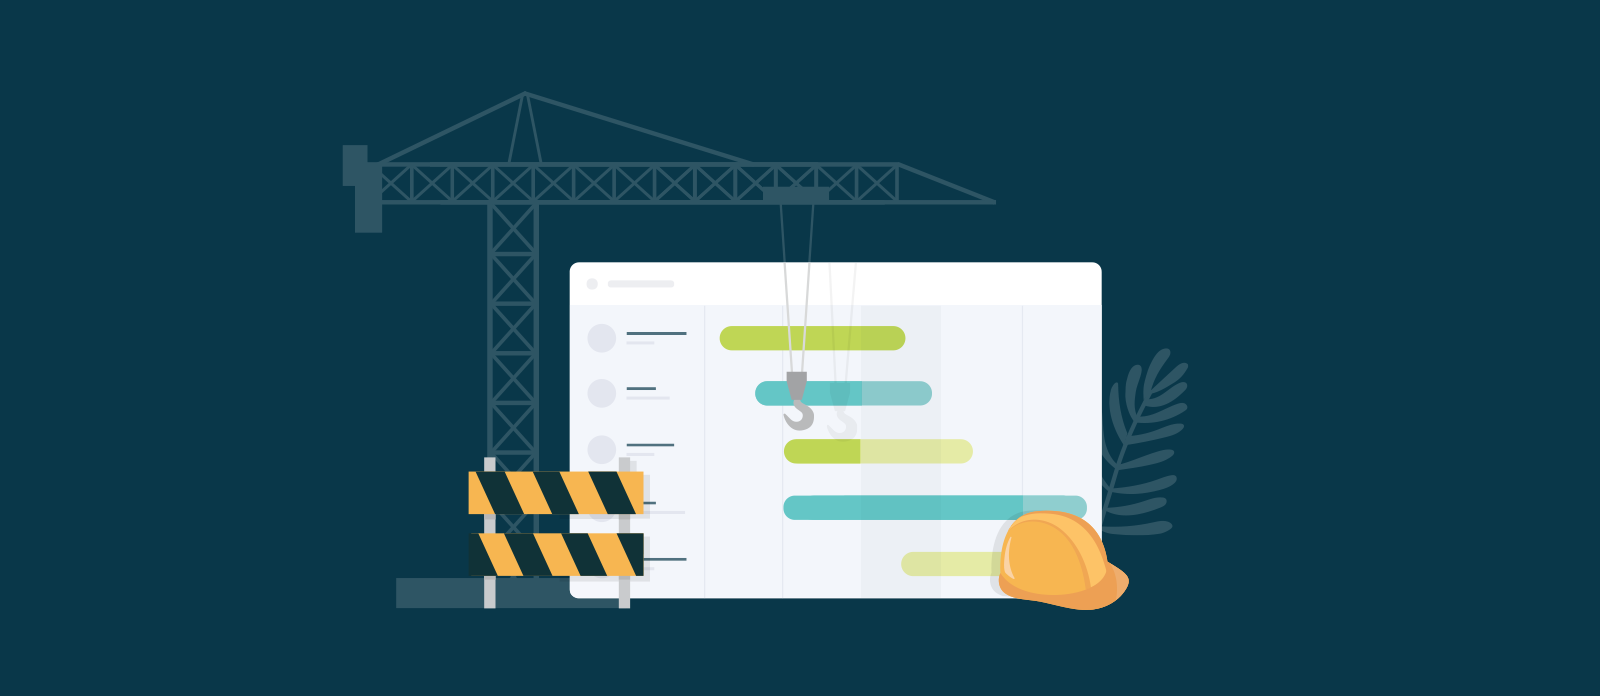 Planning A Construction Project Schedule With Gantt Chart